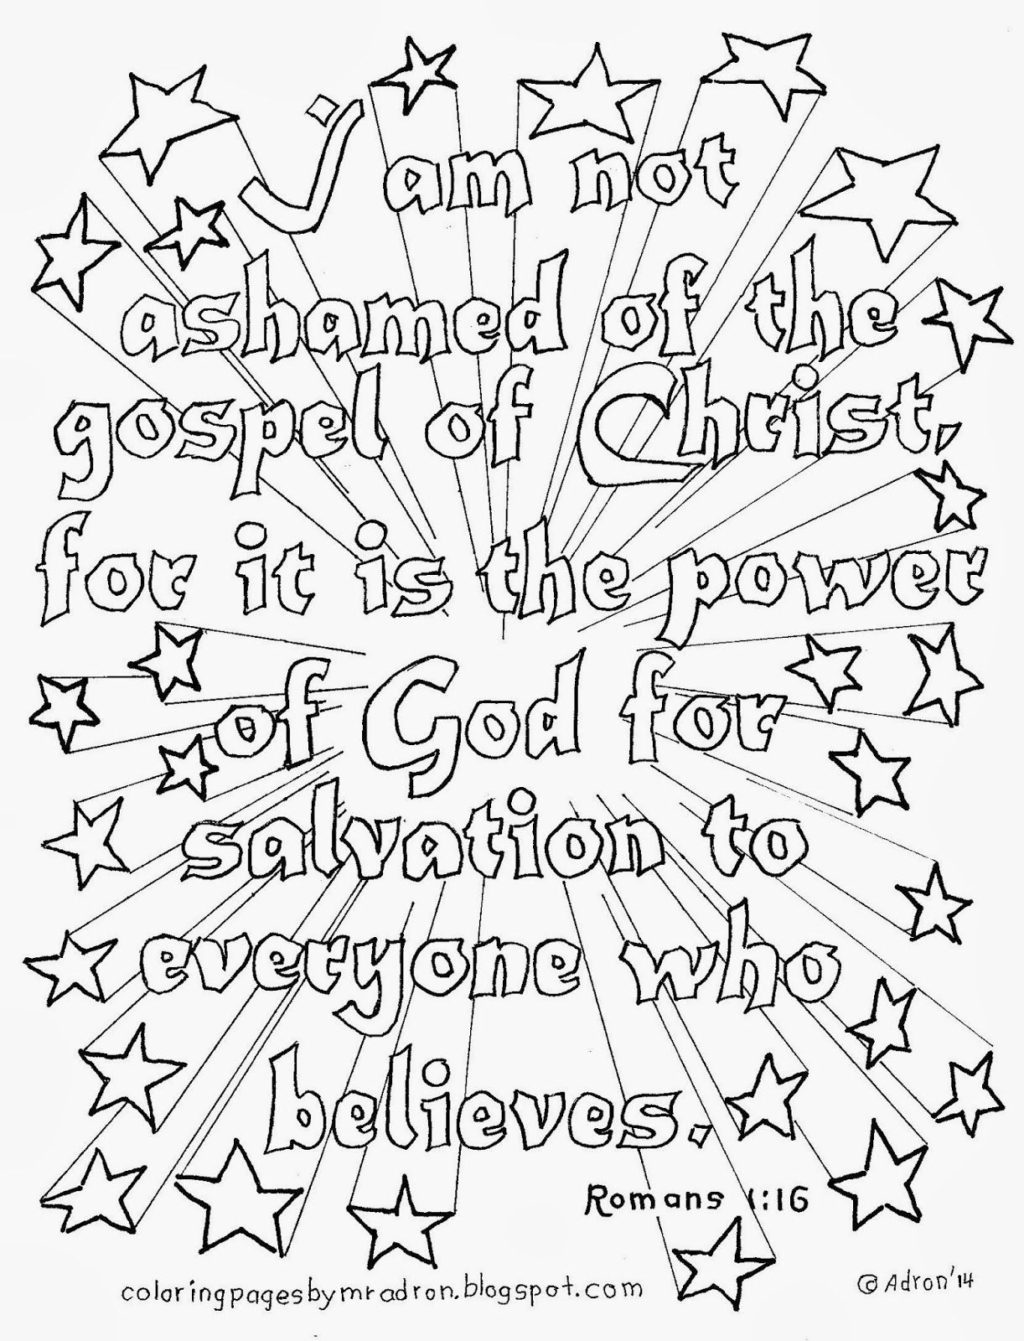 worksheet ~ Memory Verse Coloring Pages Free Printable For Adults About  Worship Christmas Story 49 Stunning Memory Verse Coloring Pages. Free  Printable Memory Verse Coloring Pages For Kids. Memory Verse Coloring Pages